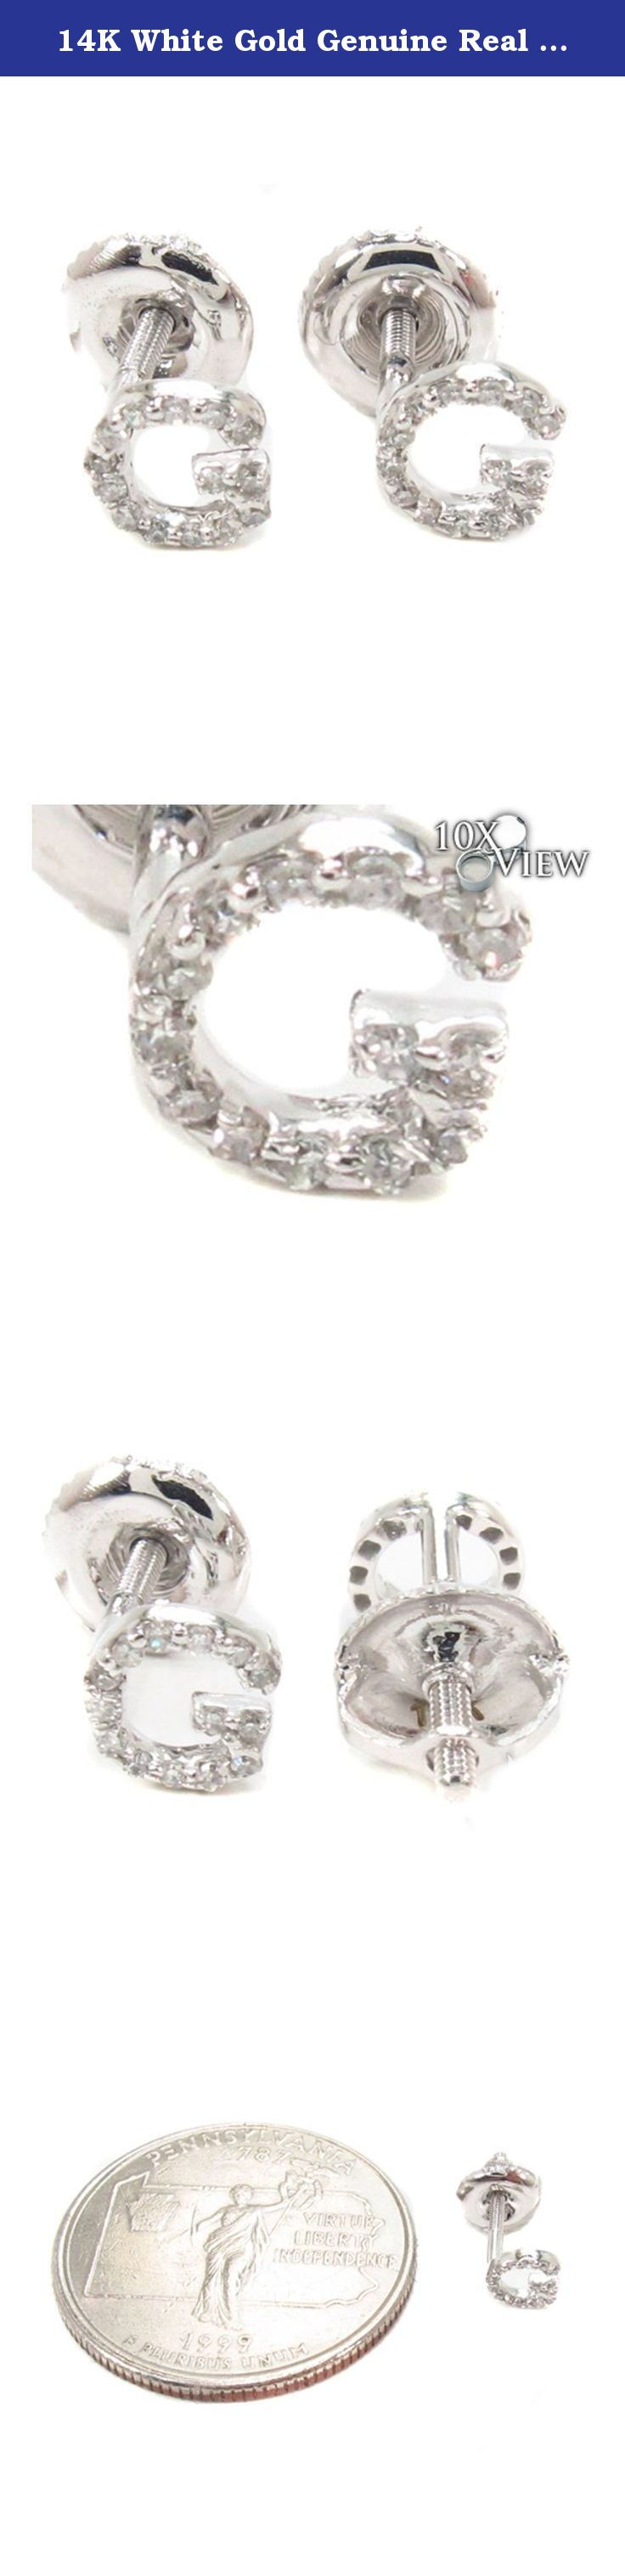 14k White Gold Genuine Real Round Cut Diamond Initial Letter Stud Earrings  With Secure Screw Backs